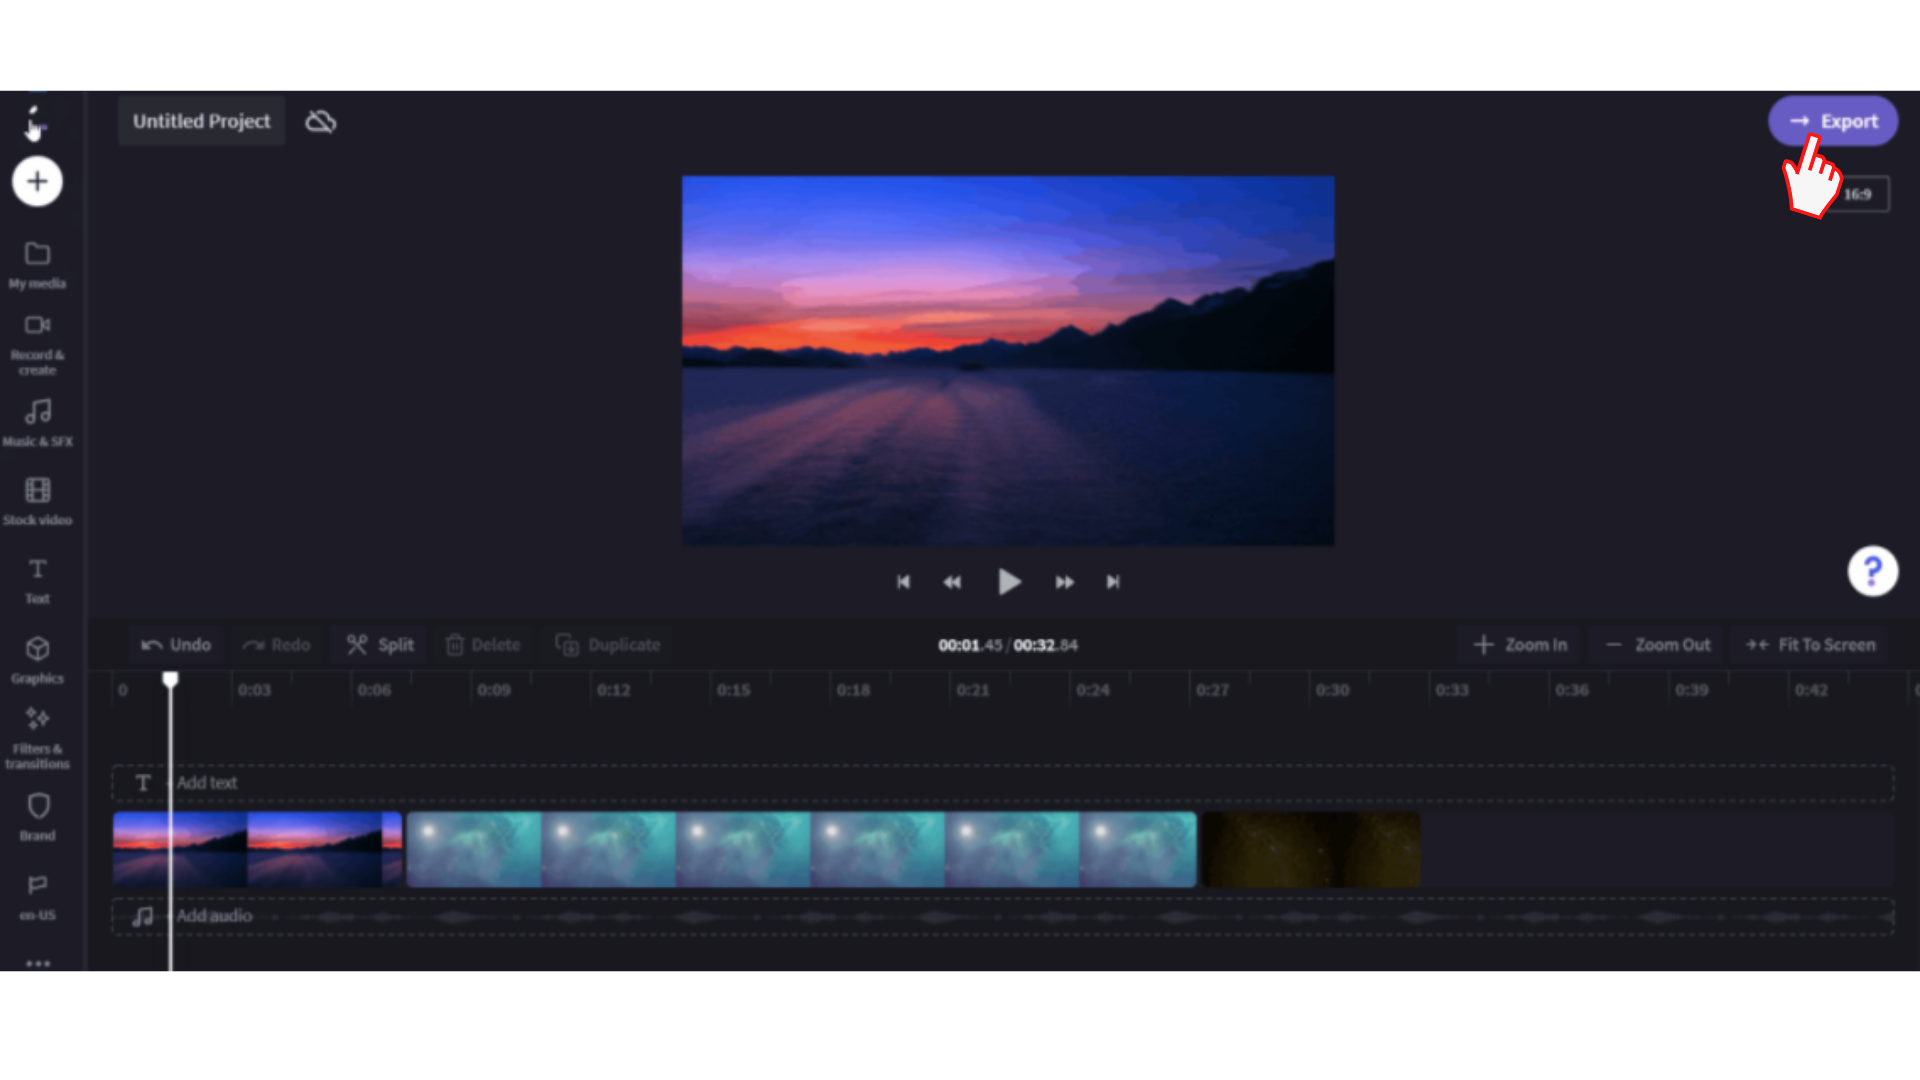 An image of the video editor showing the export button being clicked in the right right corner of the screen.